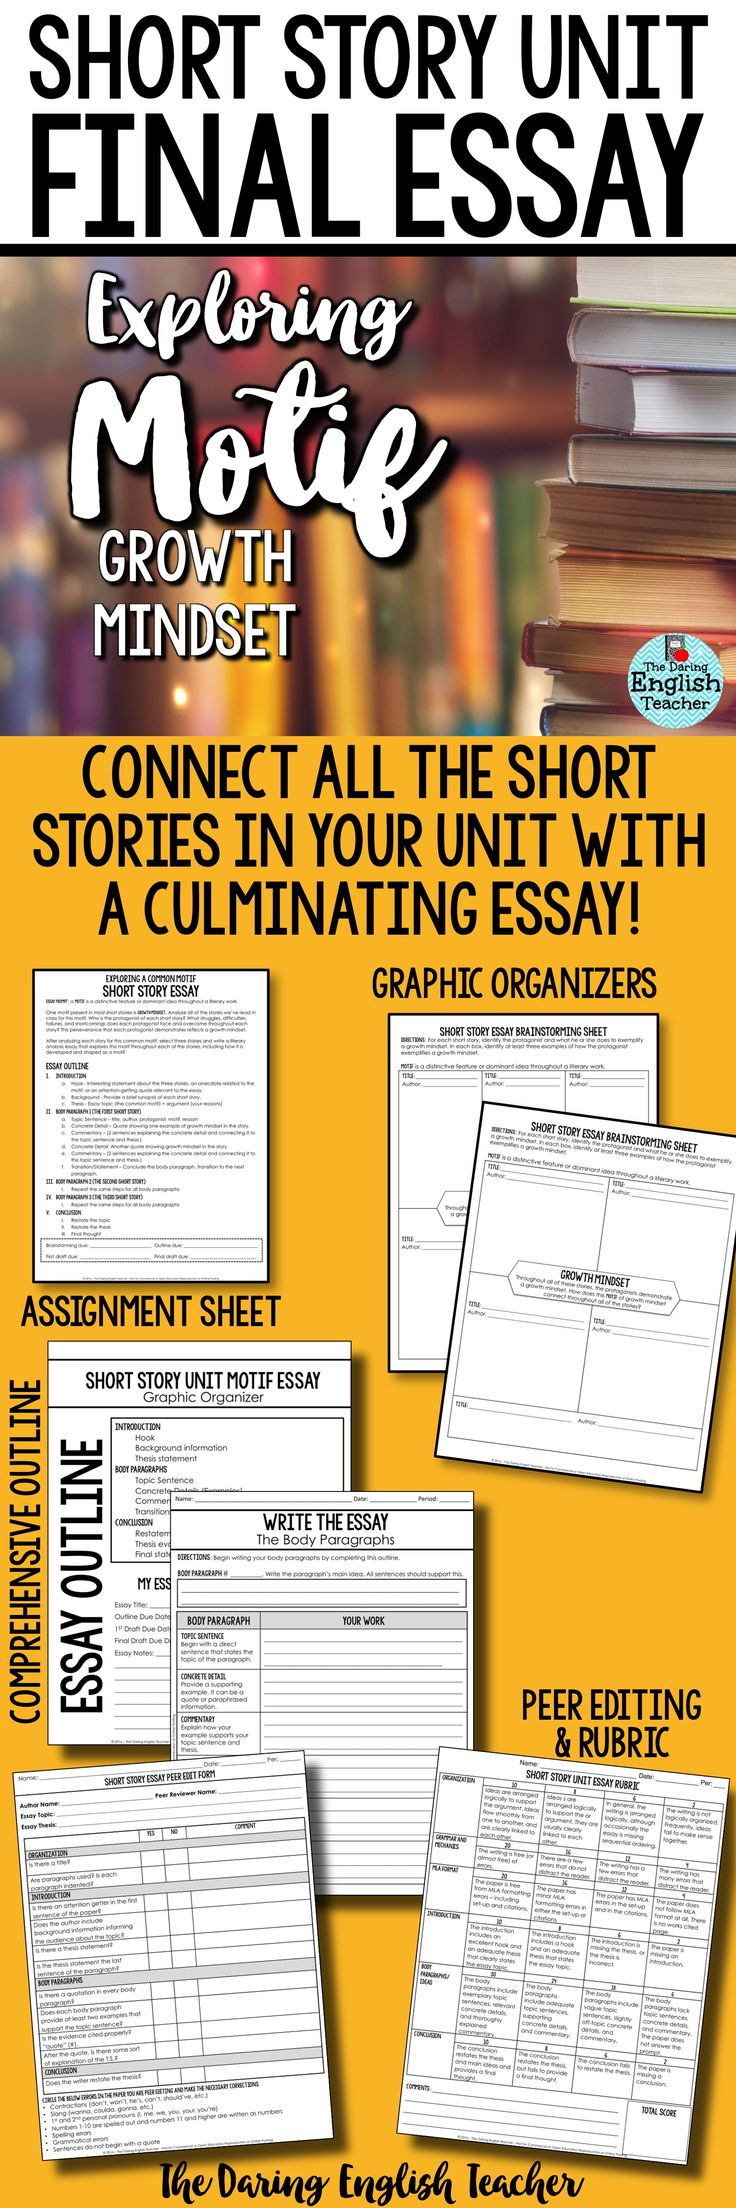 best images about analytical writing texts explore and cultivate a growth mindset in your secondary english classroom this short story essay